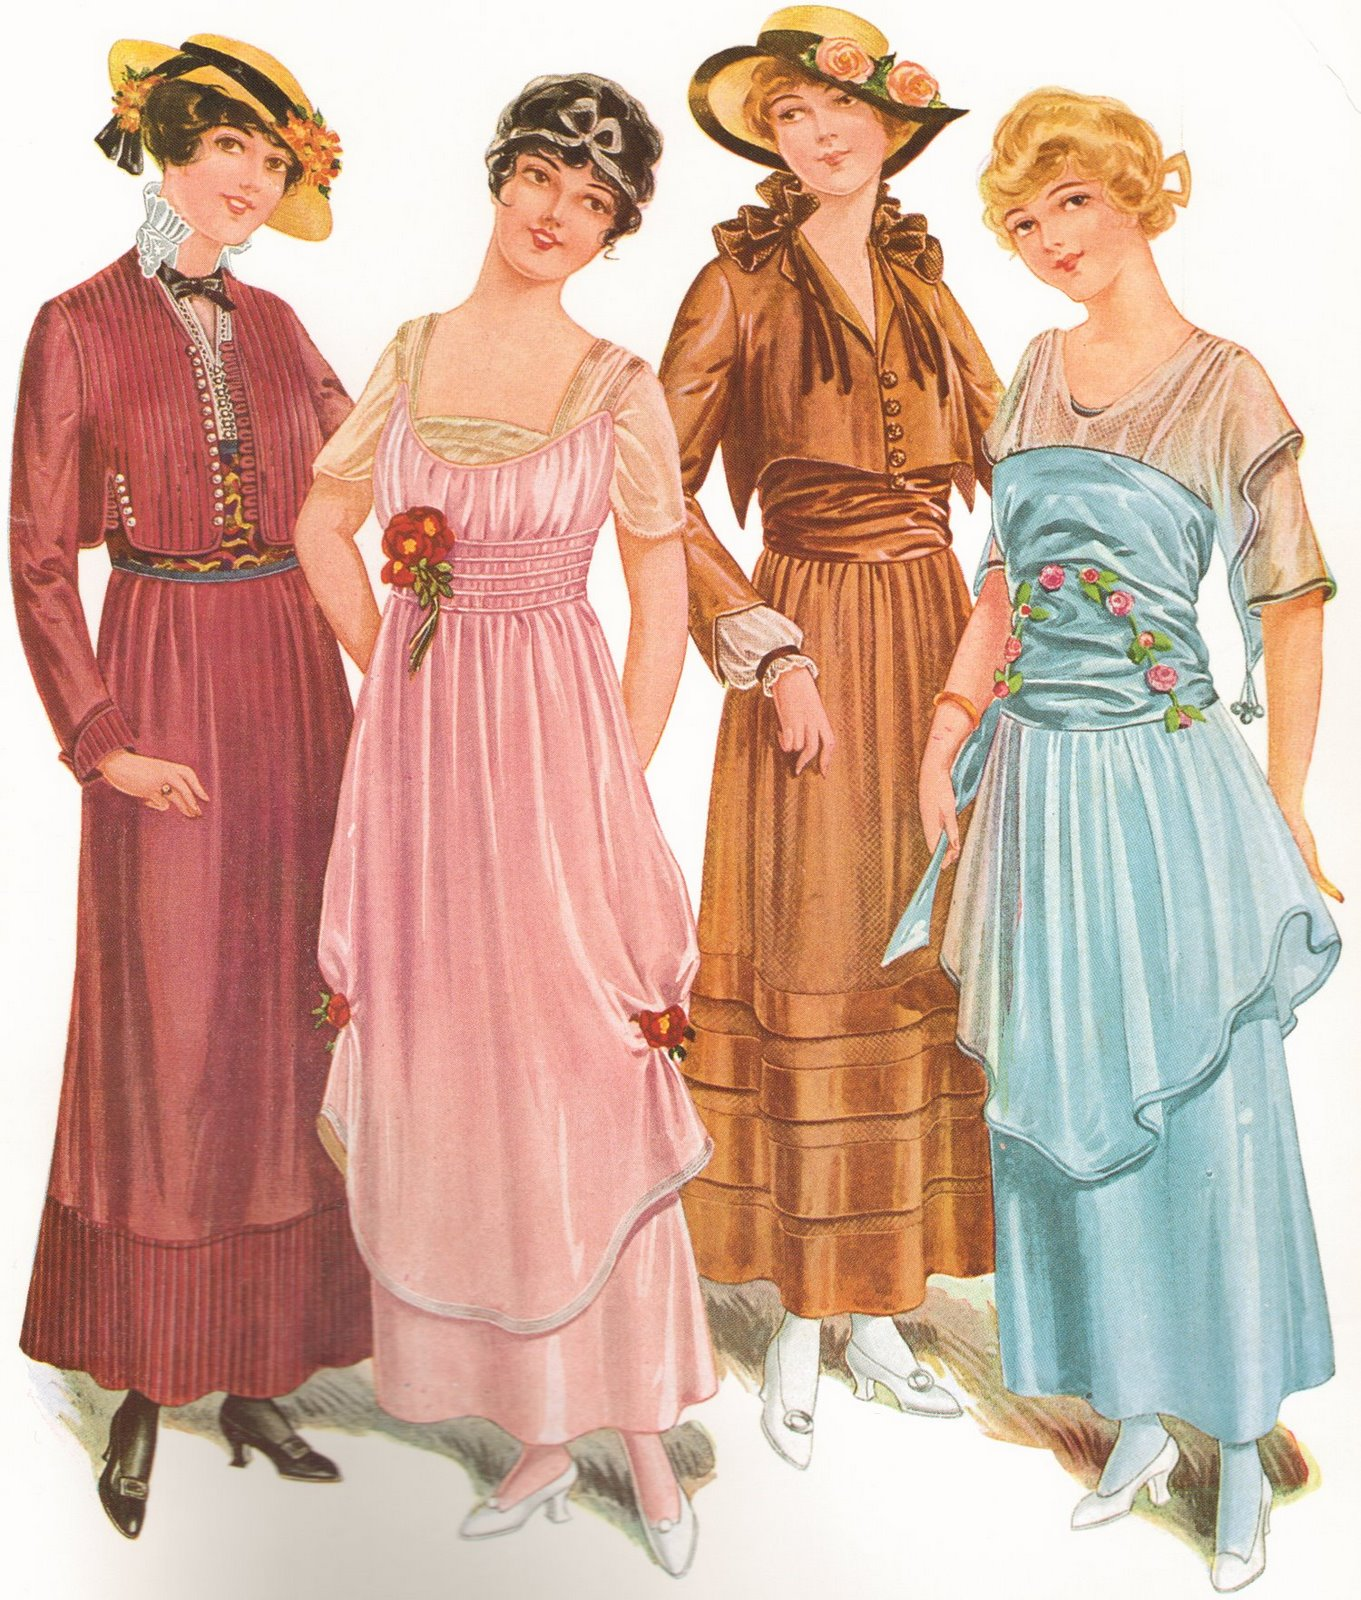 from a 1915 Gimbels fashion magazine, courtesy  the blog Historically Romantic